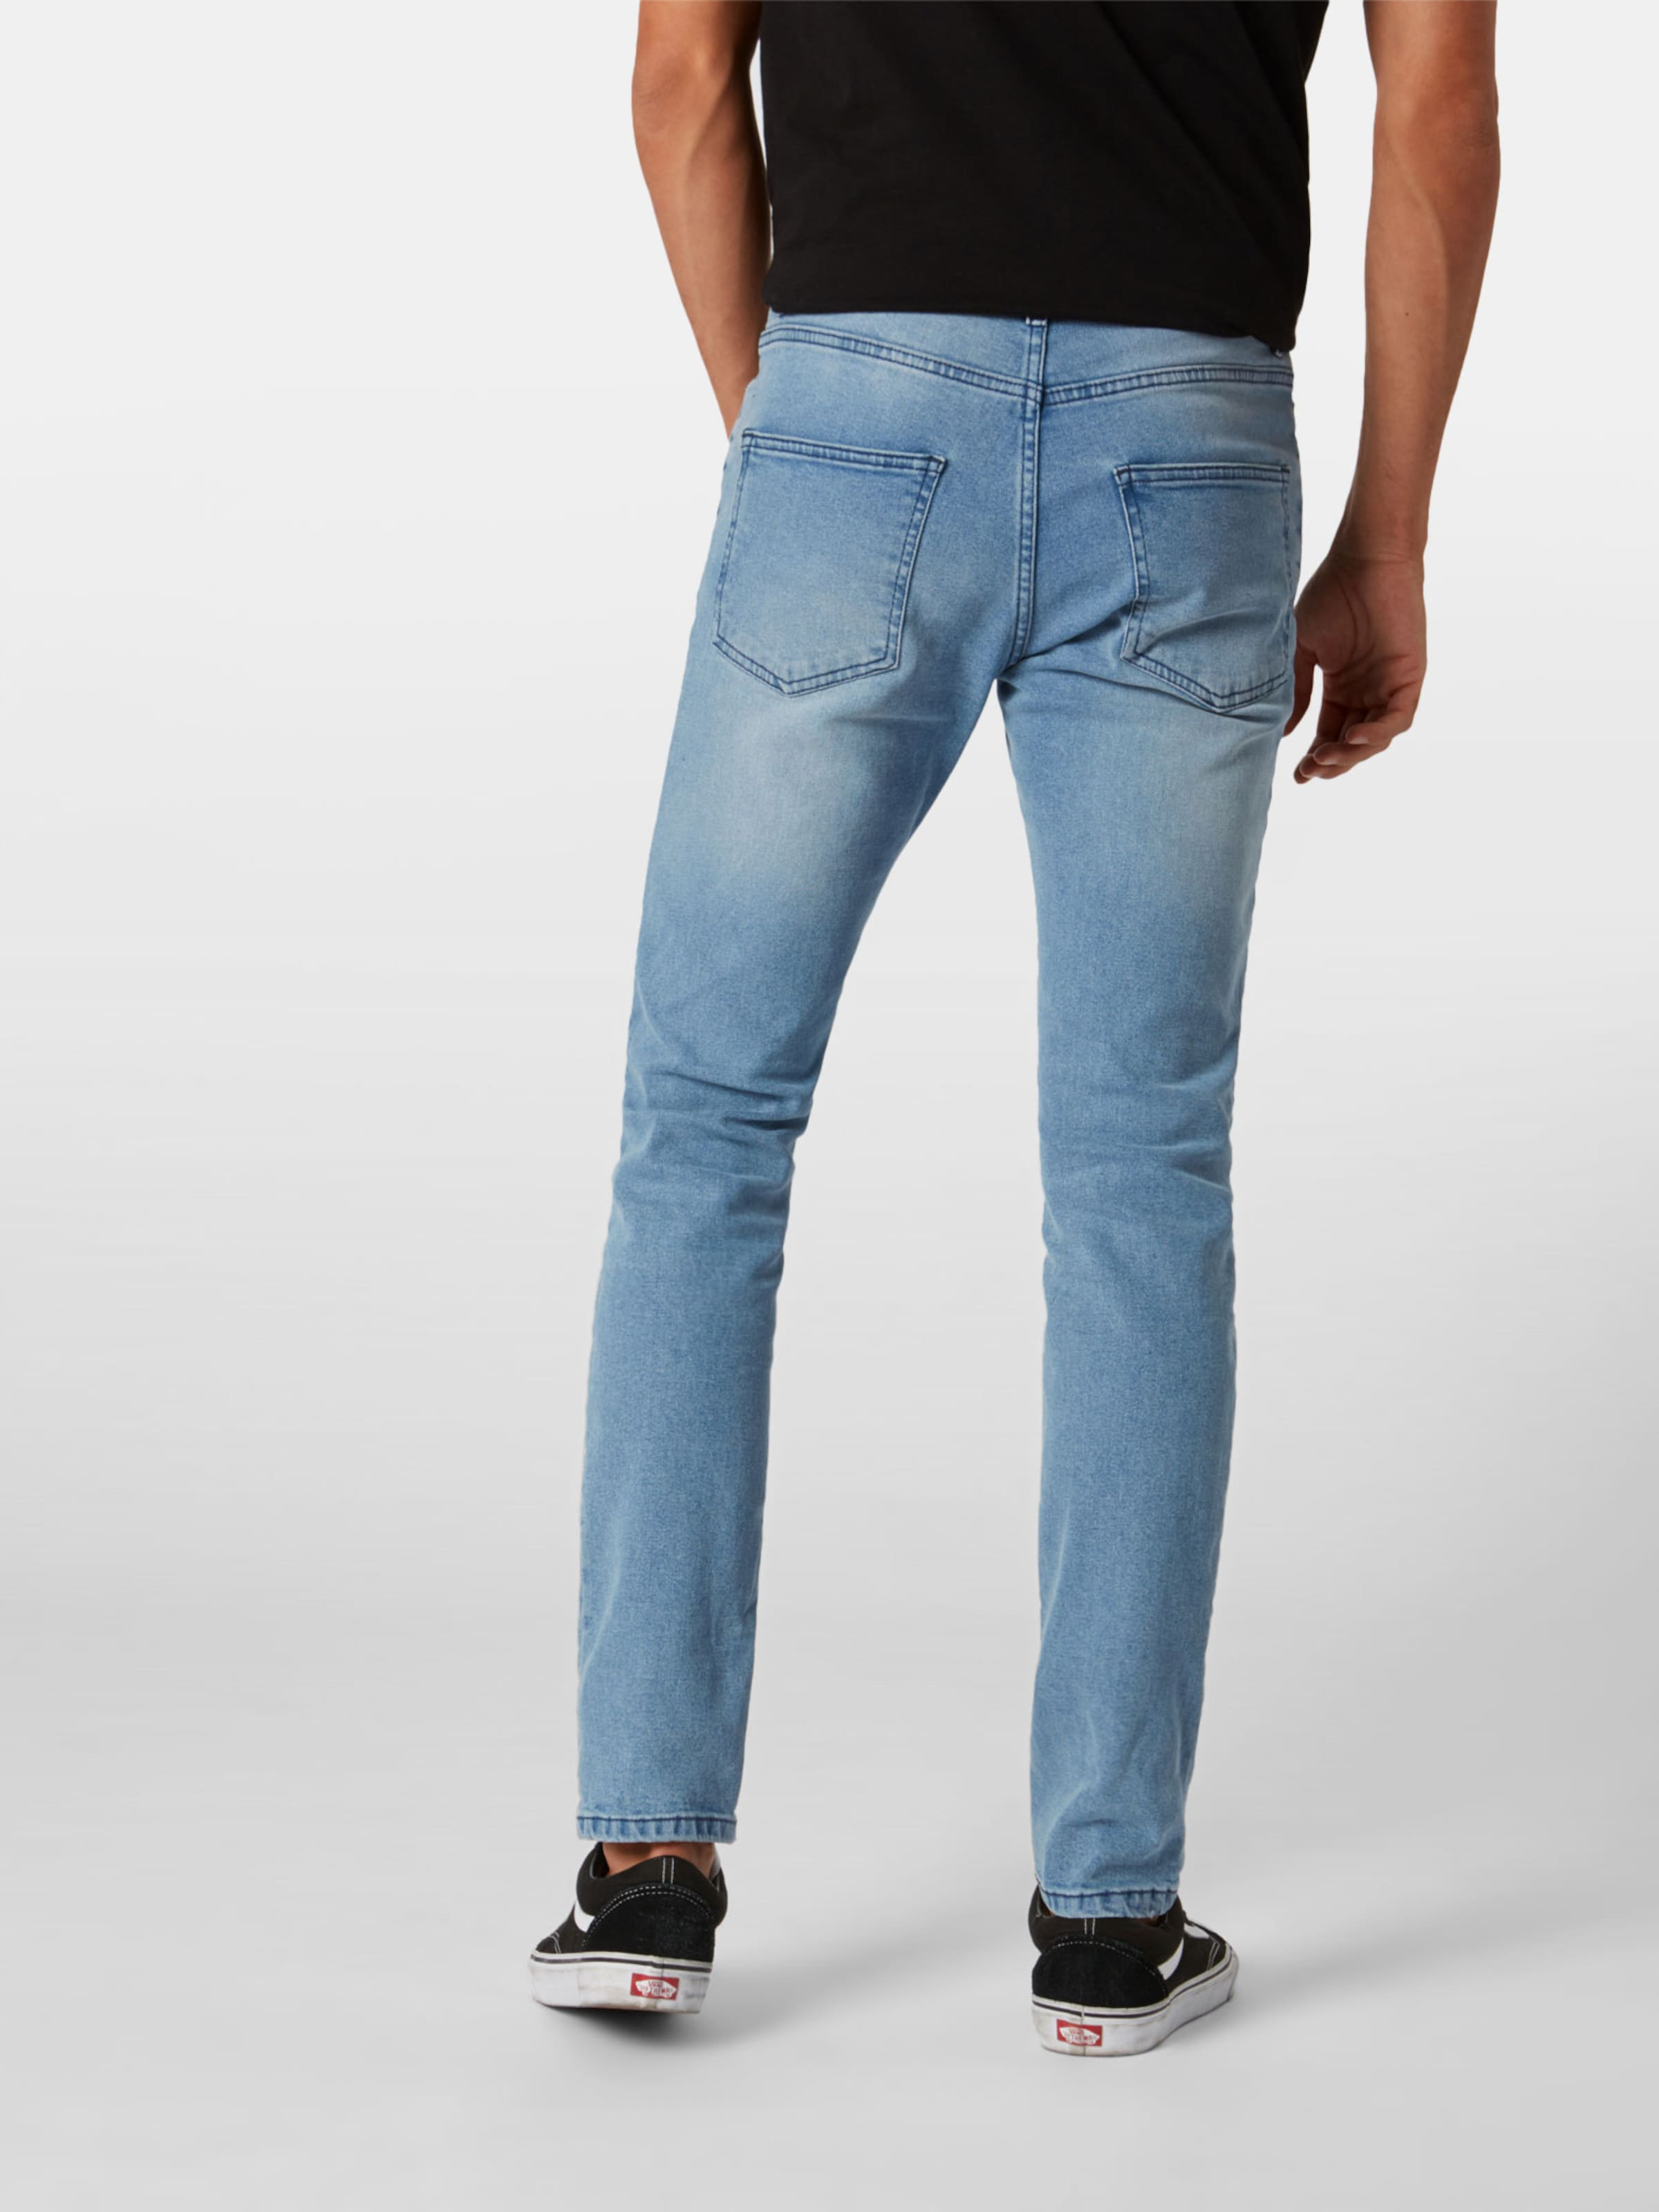 Jean En Denim 'crop Bleu Review Blu' DeWYH9E2I